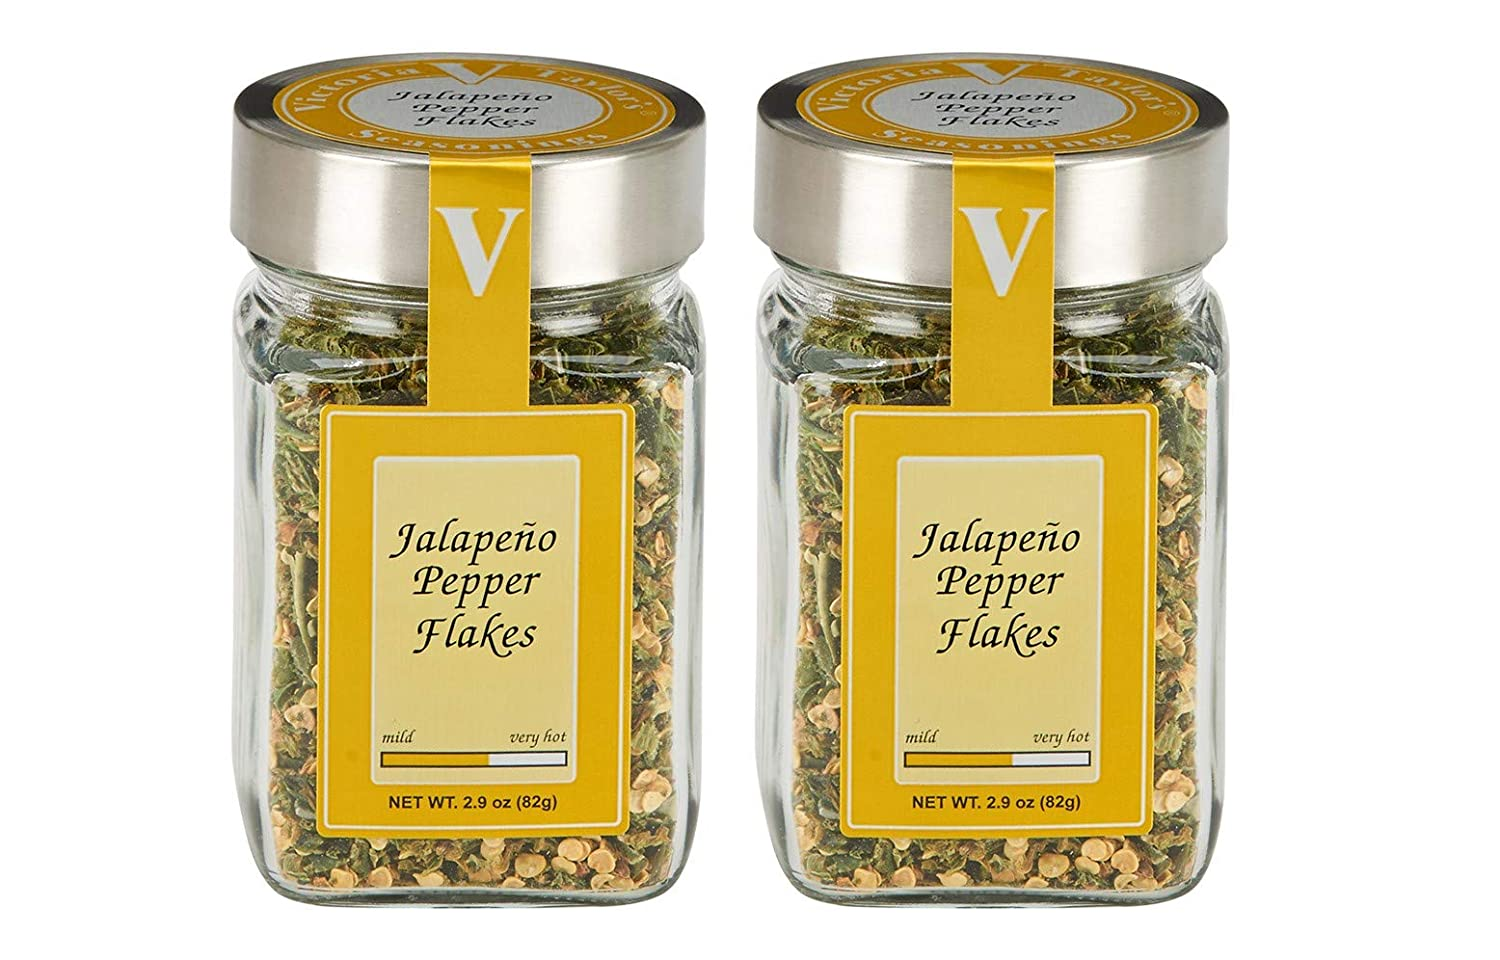 Jalapeno Pepper Flakes 2 Pack – Adds heat to chili, pasta, or any recipe.